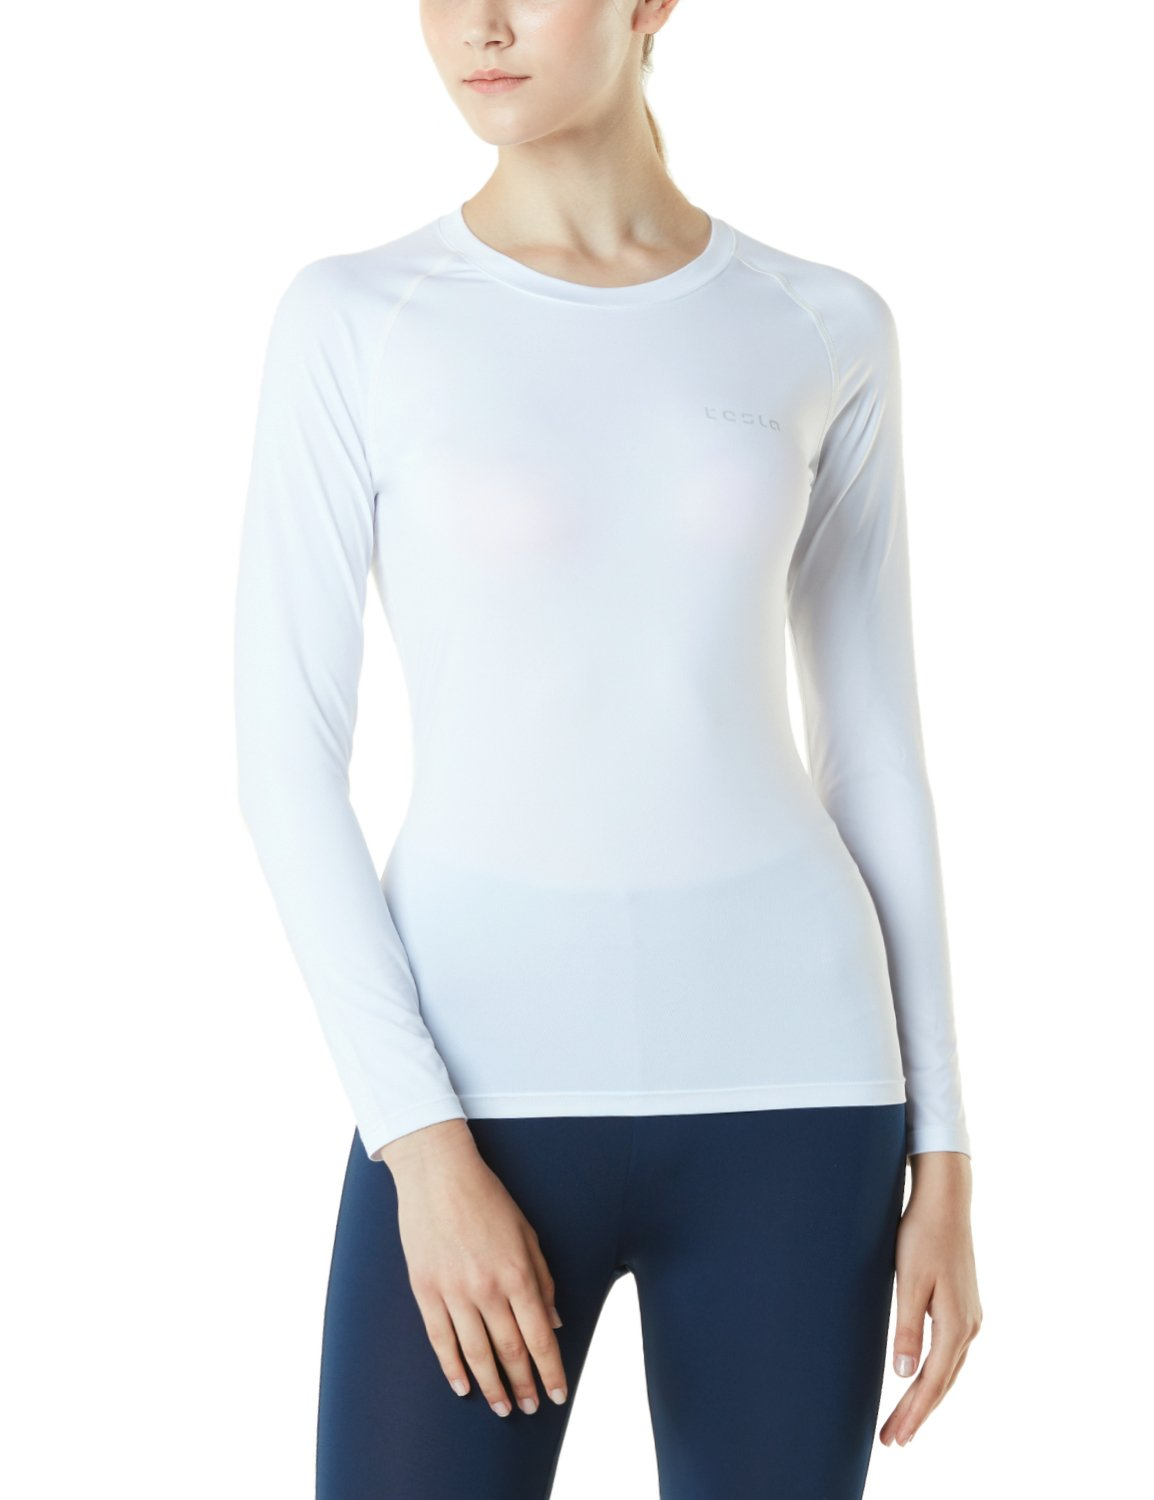 TM-FUD01-WHT_Medium Tesla Women's Compression Long Sleeve T-Shirts Cool Dry Baselayer FUD01